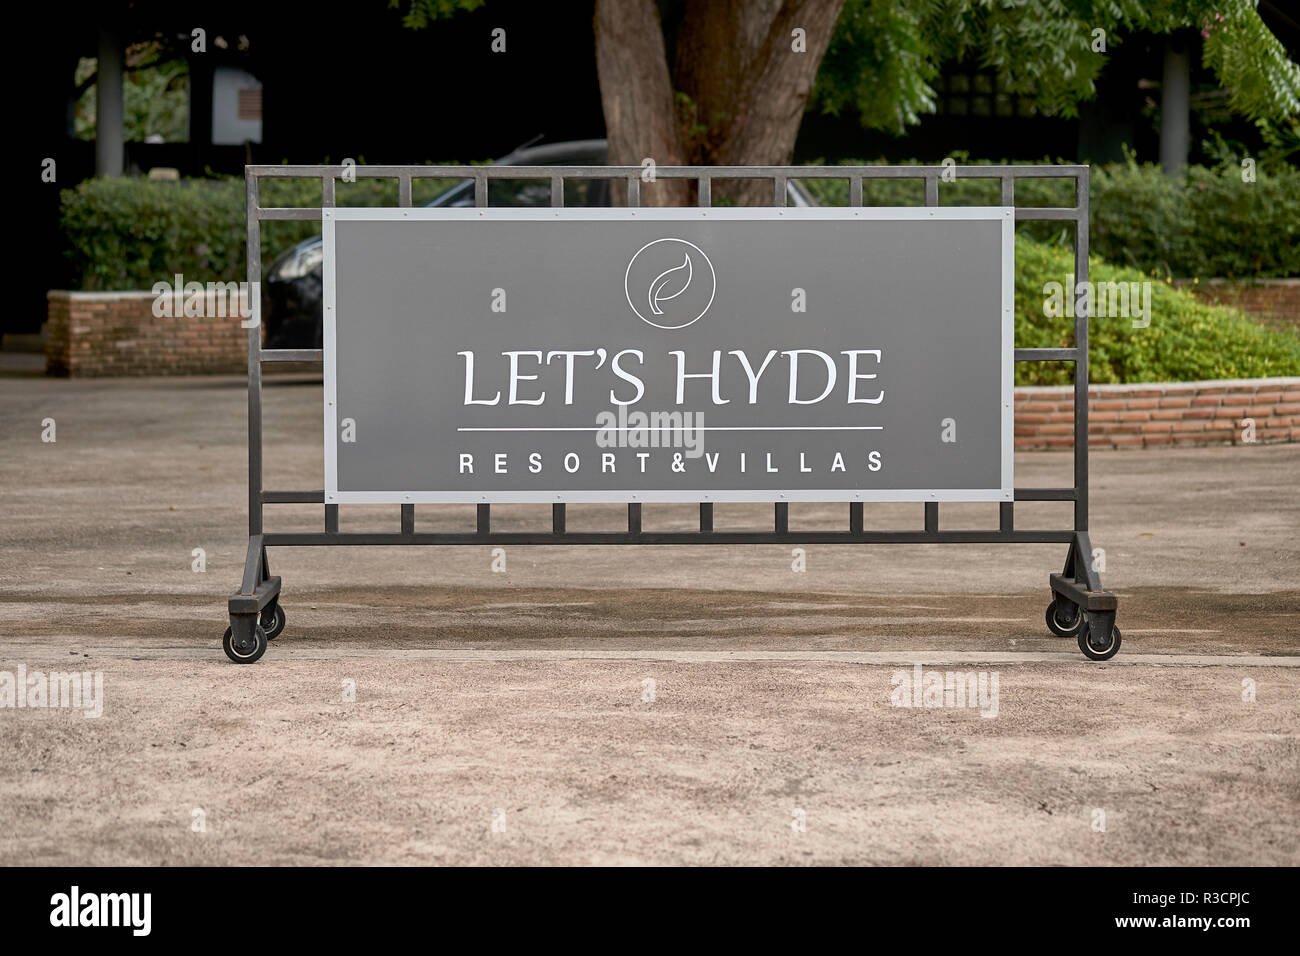 Lets Hide (Hyde) play on words resort name - Stock Image